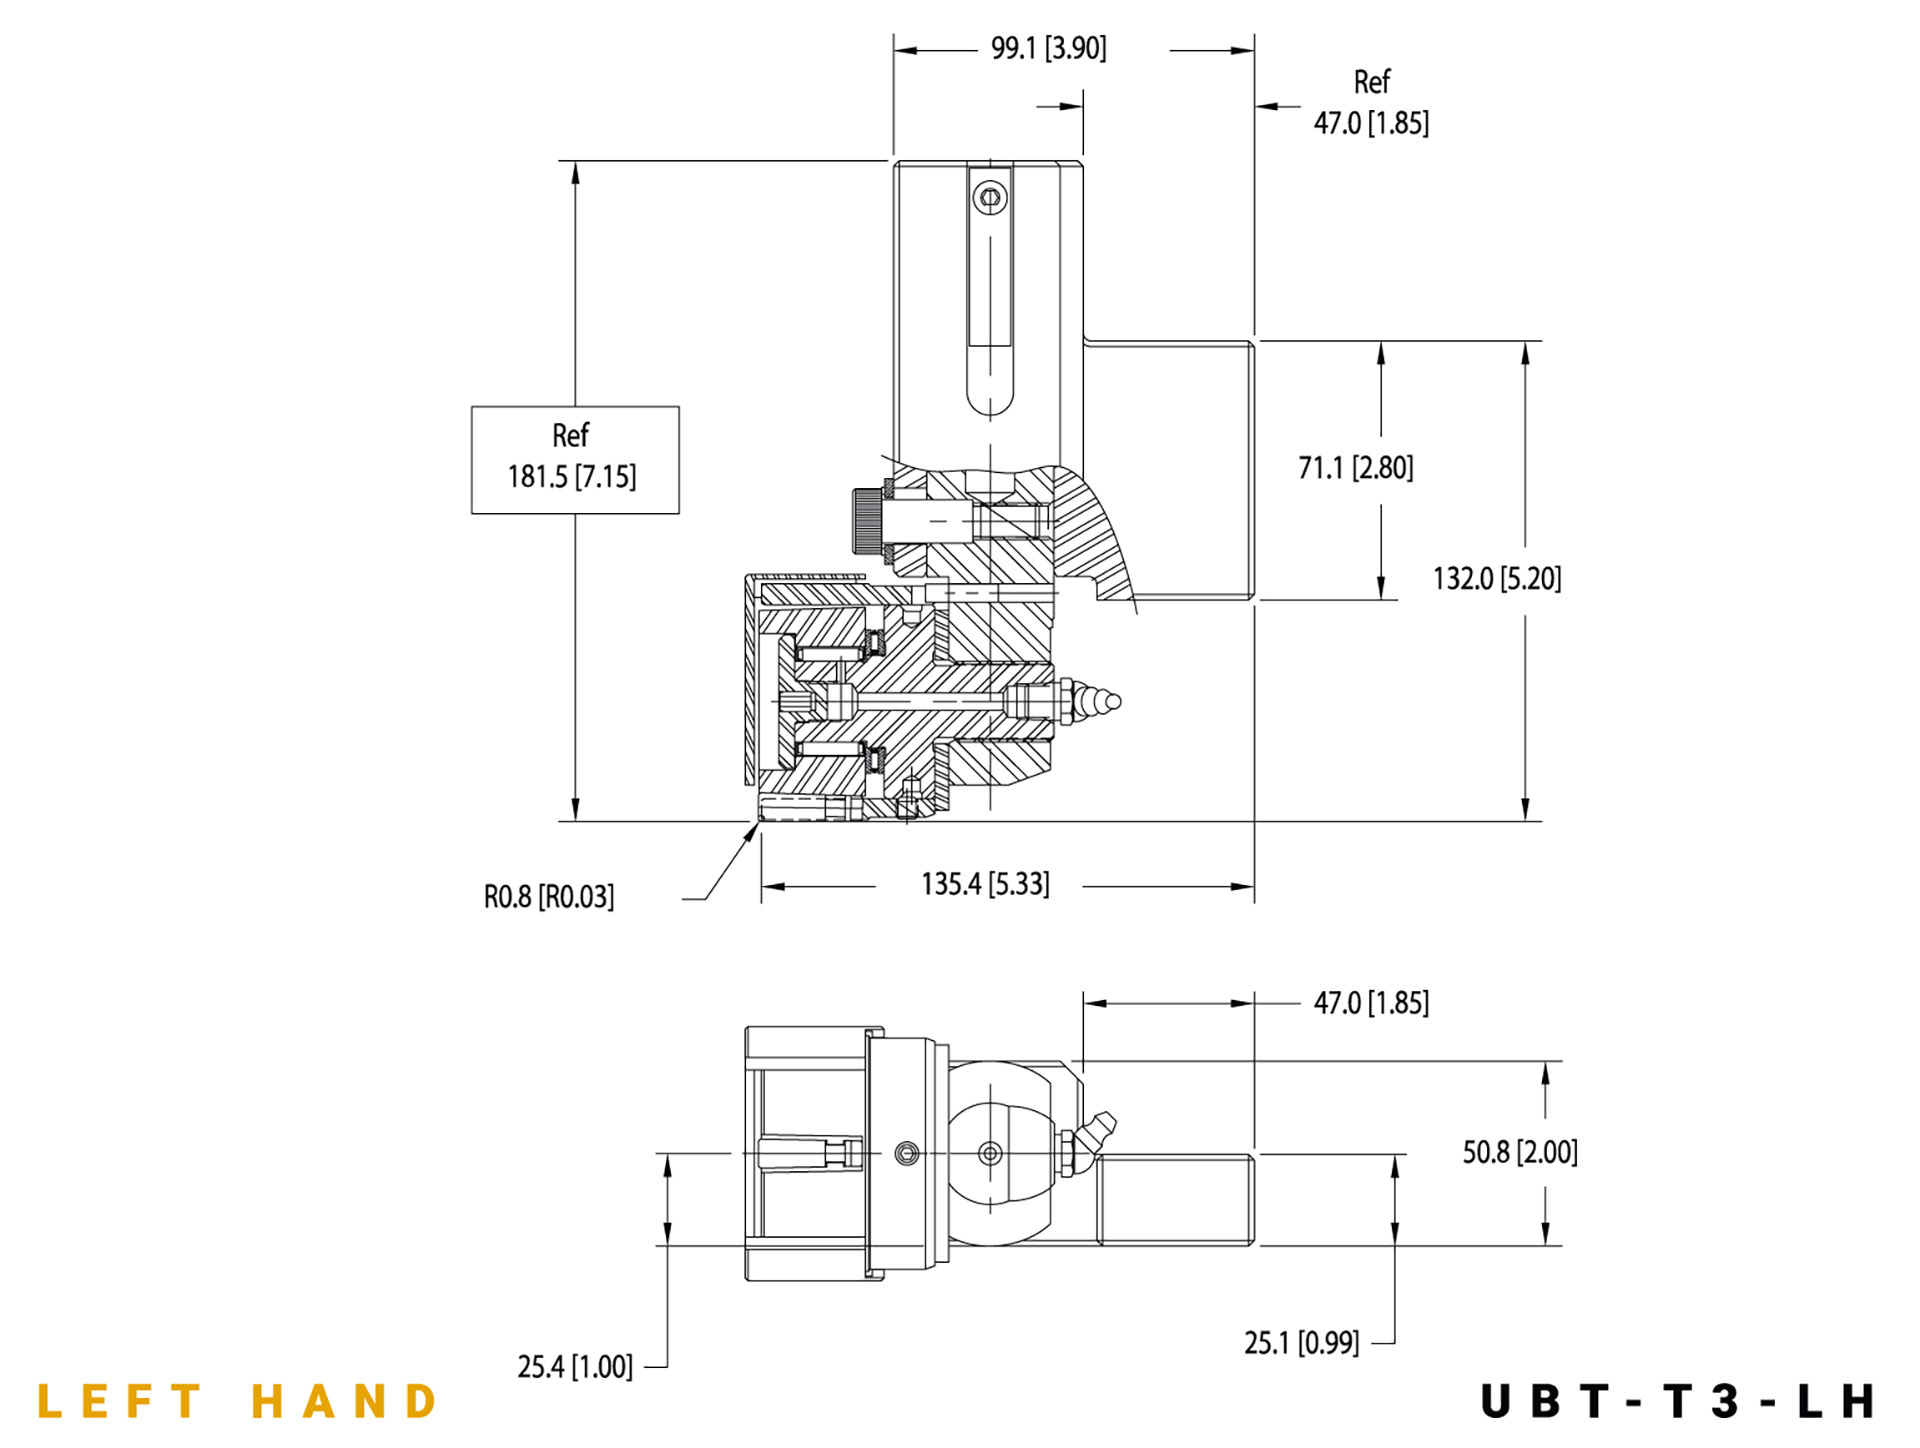 UBT-T3 LH specifications